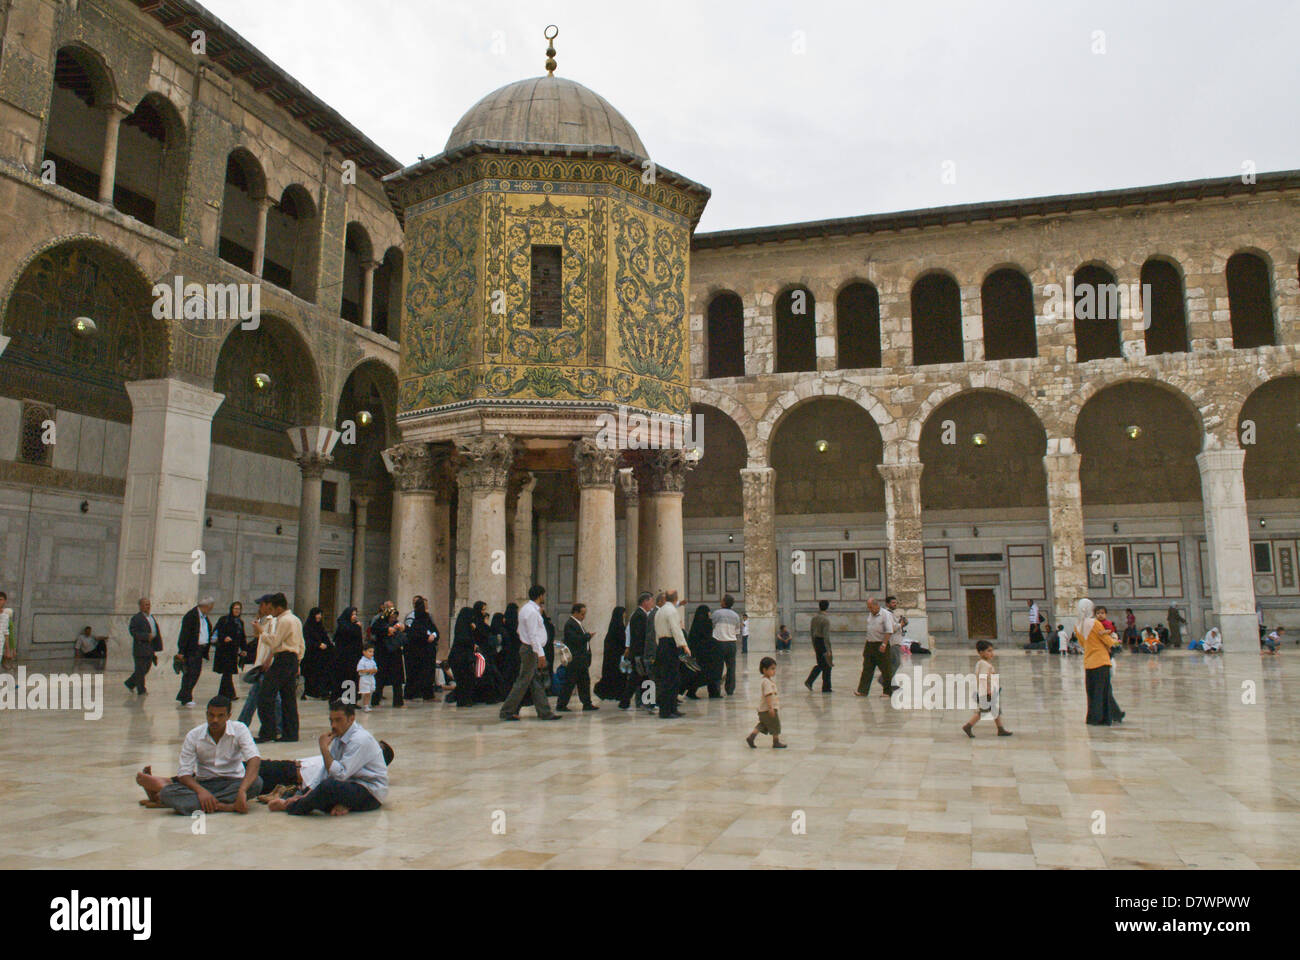 Damascus, Syria  The Great Umayyad Mosque, an 8th century